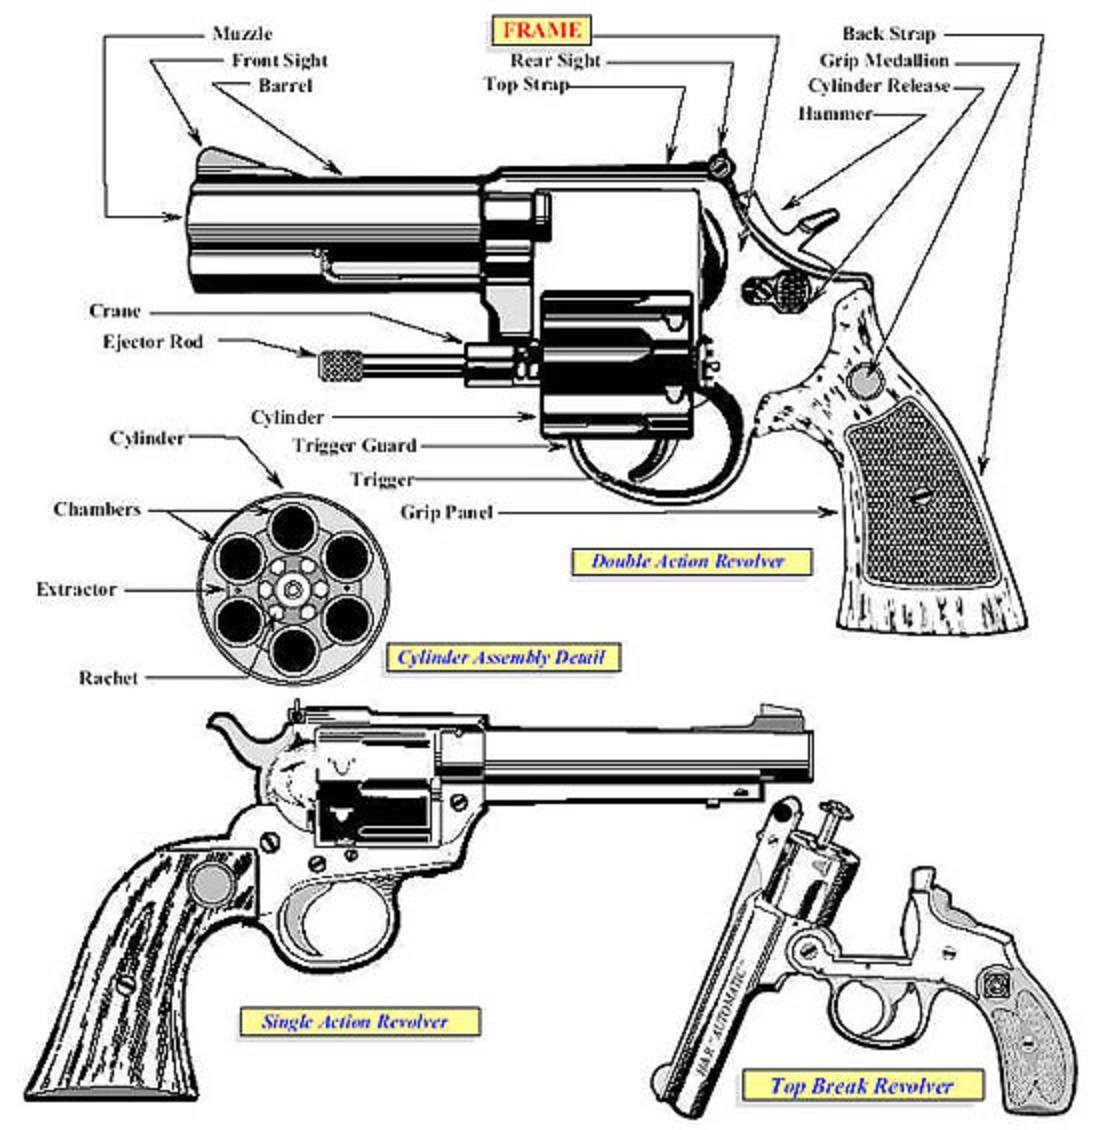 hight resolution of image large of an illustration showing the primary characteristics exhibited in the revolver category